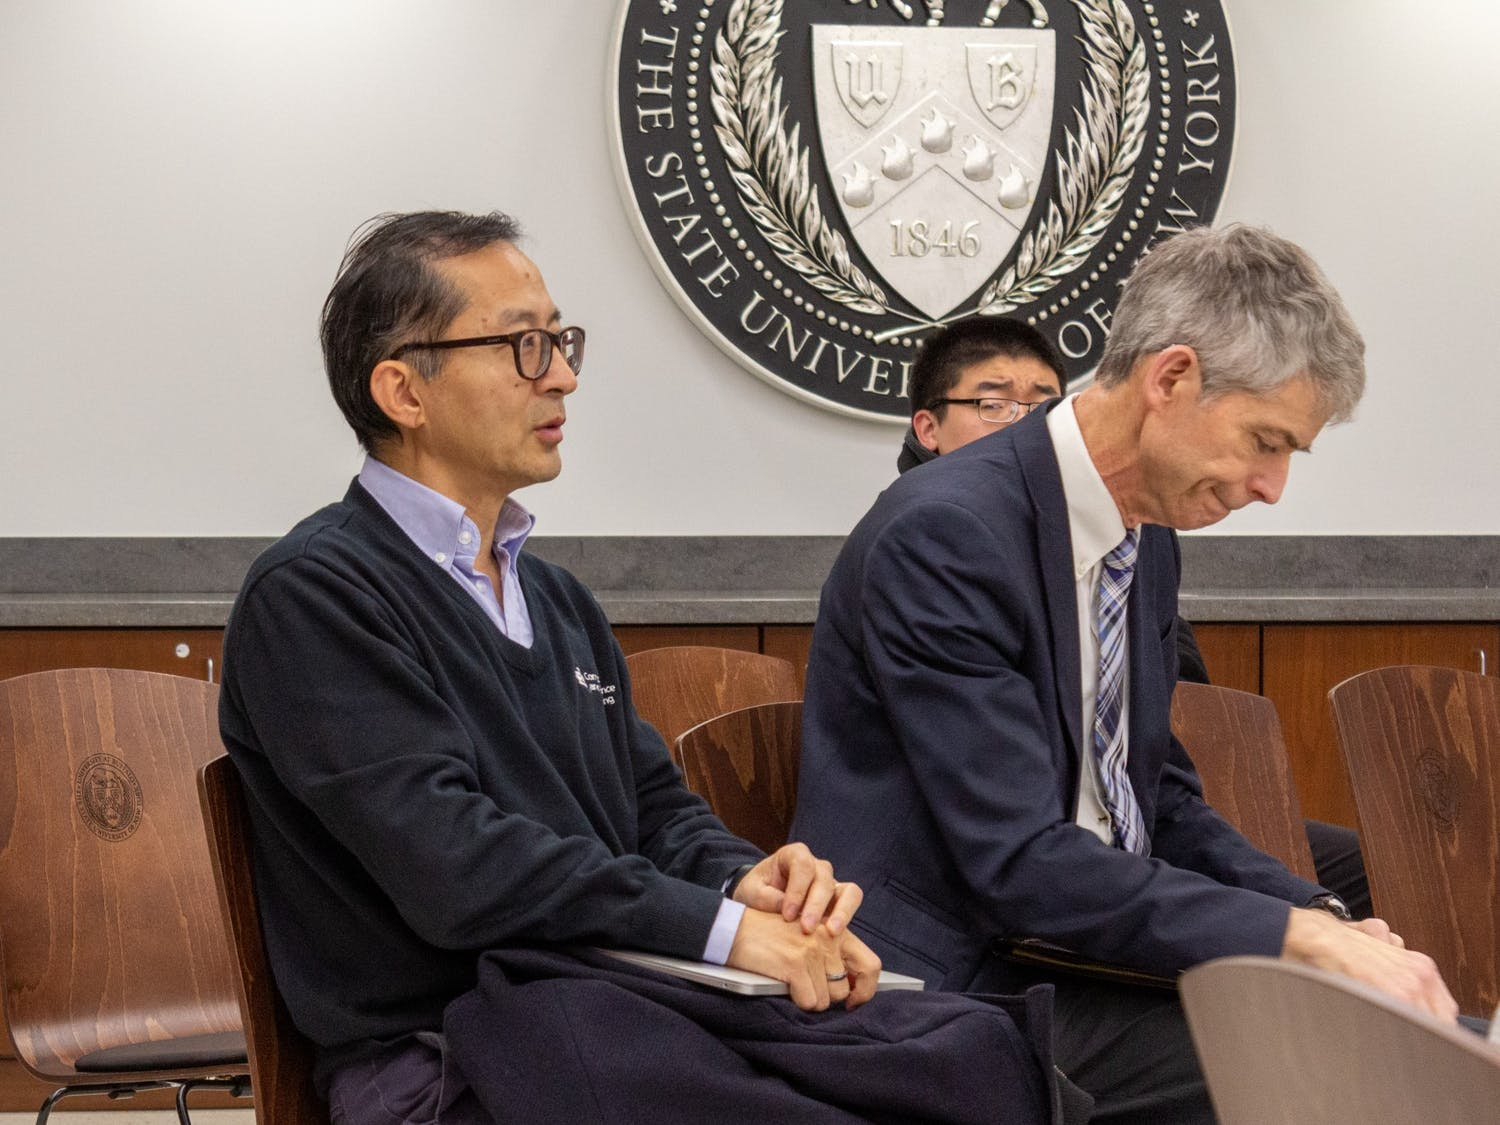 Computer Science and Engineering Department Chair Chunming Qiao provides his opinion on the search for the next engineering dean.